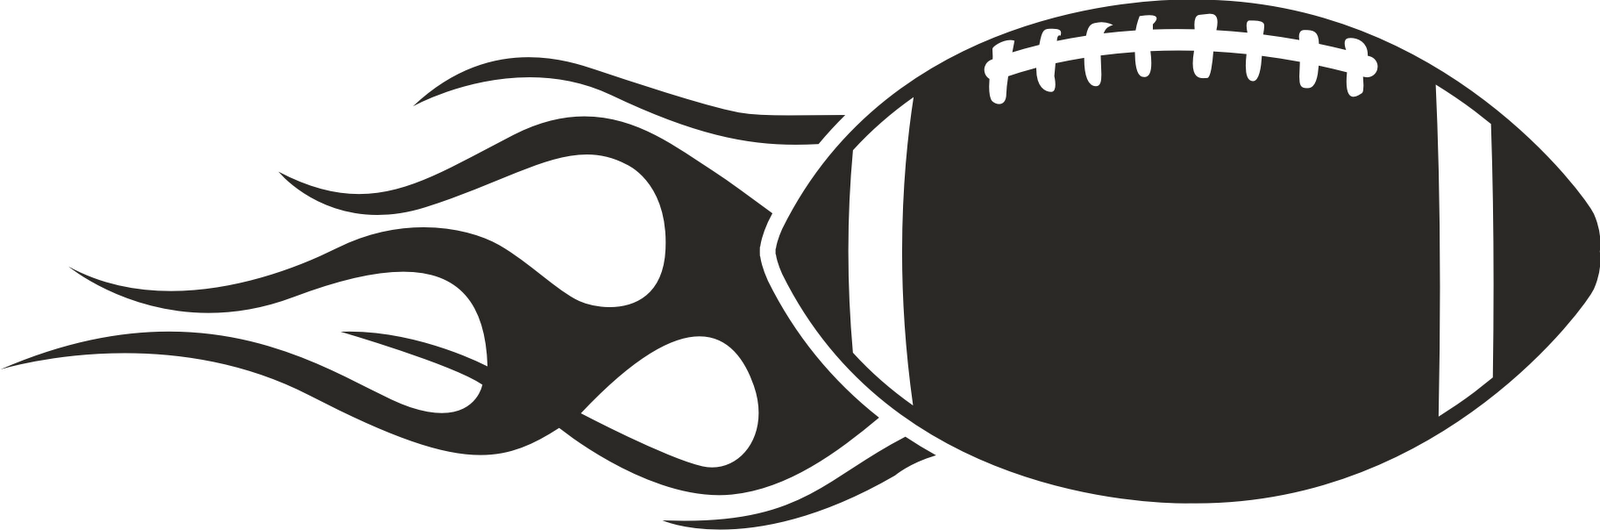 1600x530 Top 69 Football Clip Art